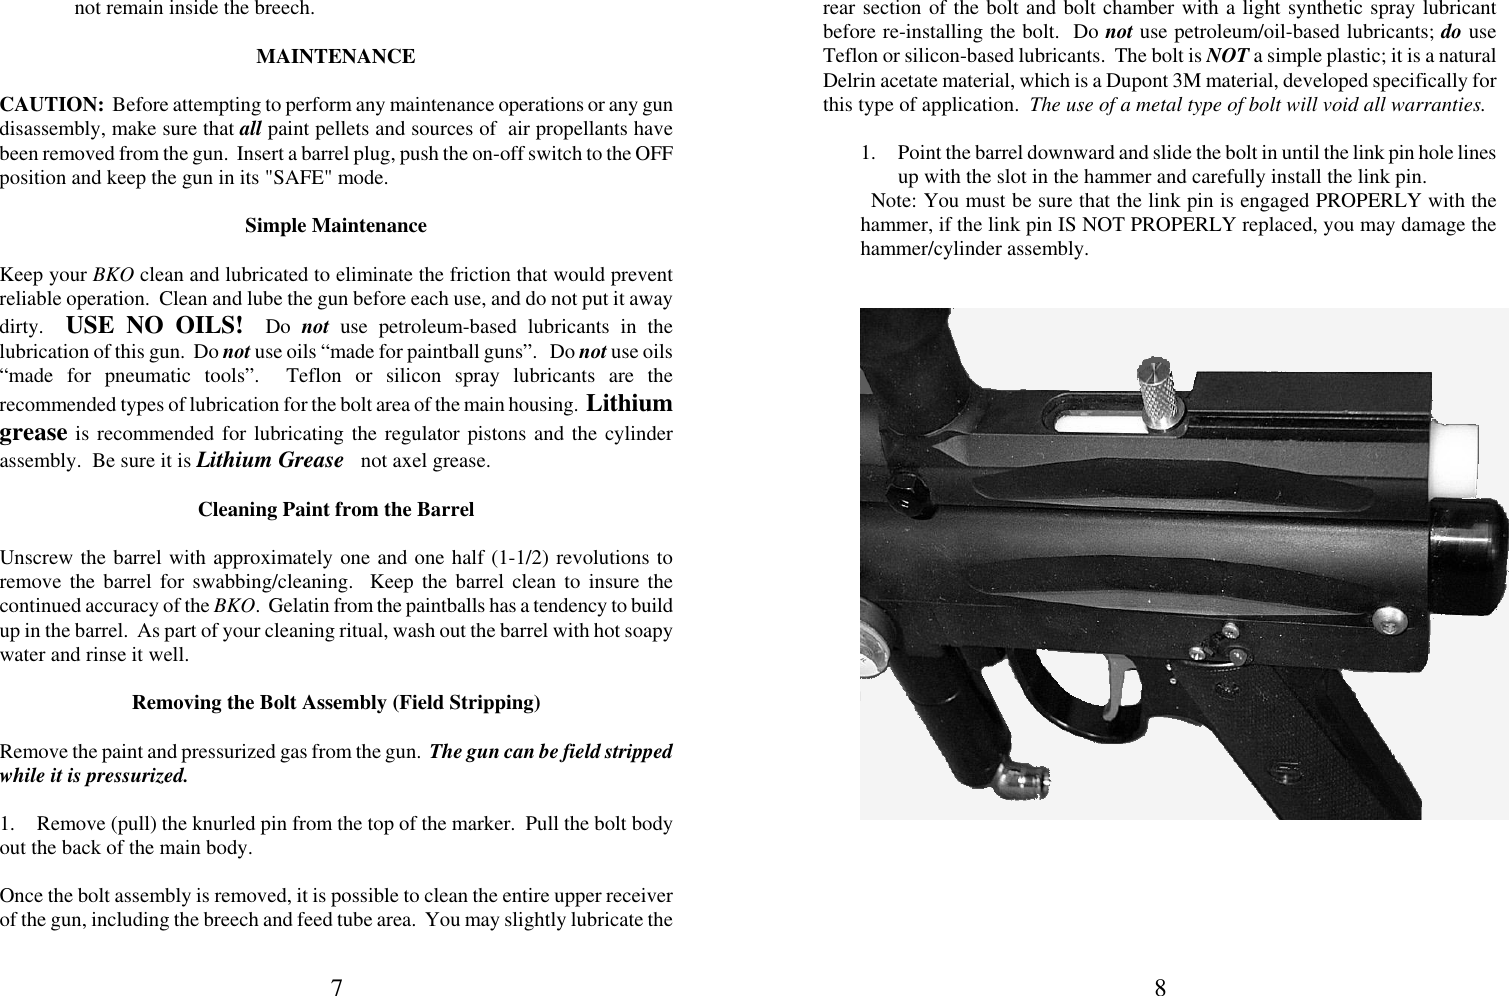 Indian Creek Bko 2003 Users Manual INSTRUCTION